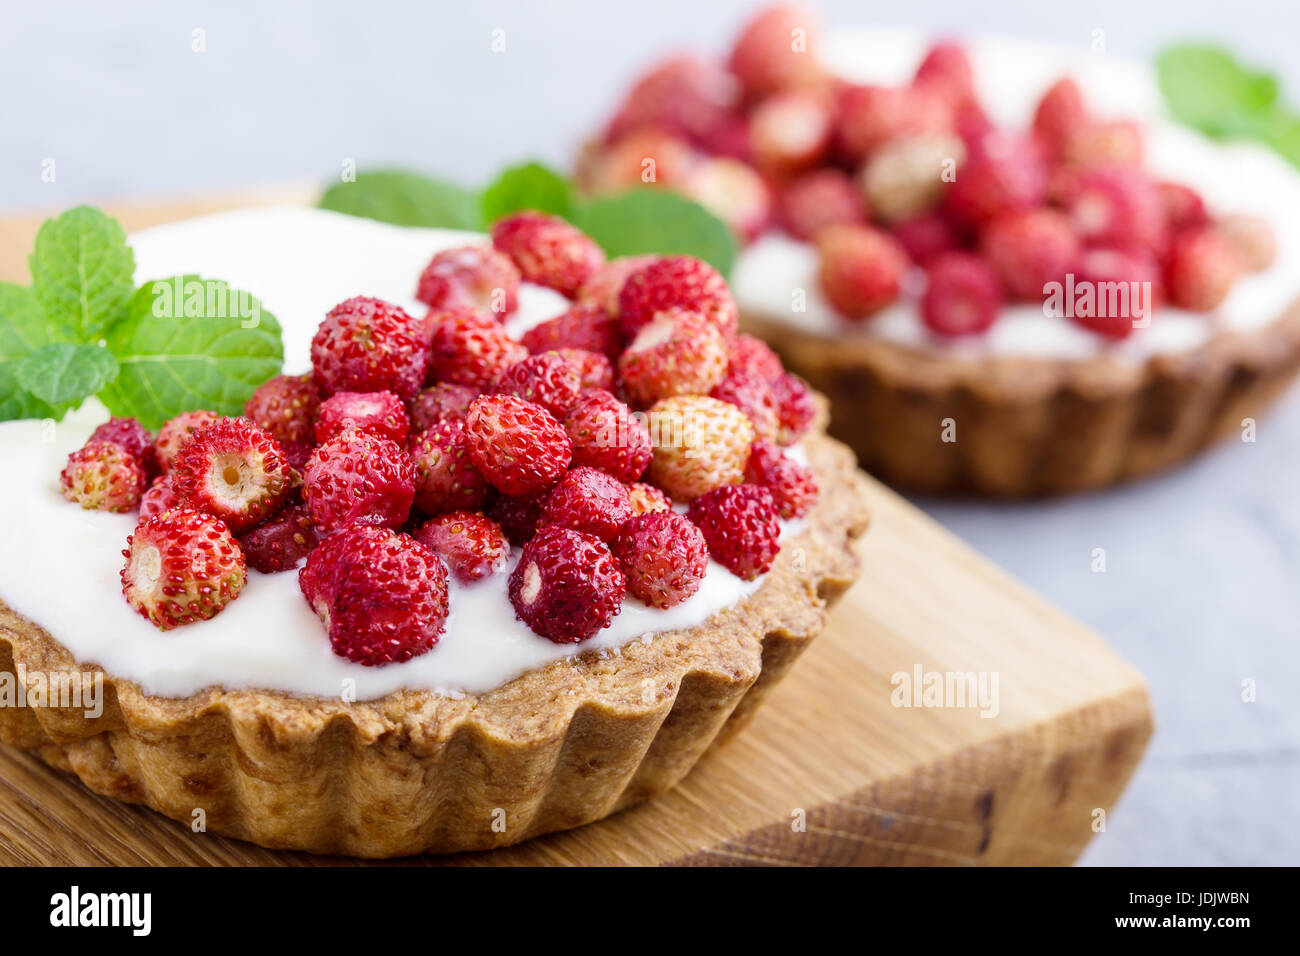 Wild strawberry tartlets with cream filling, delicious summer fruit mini tarts on rustic cutting board - Stock Image